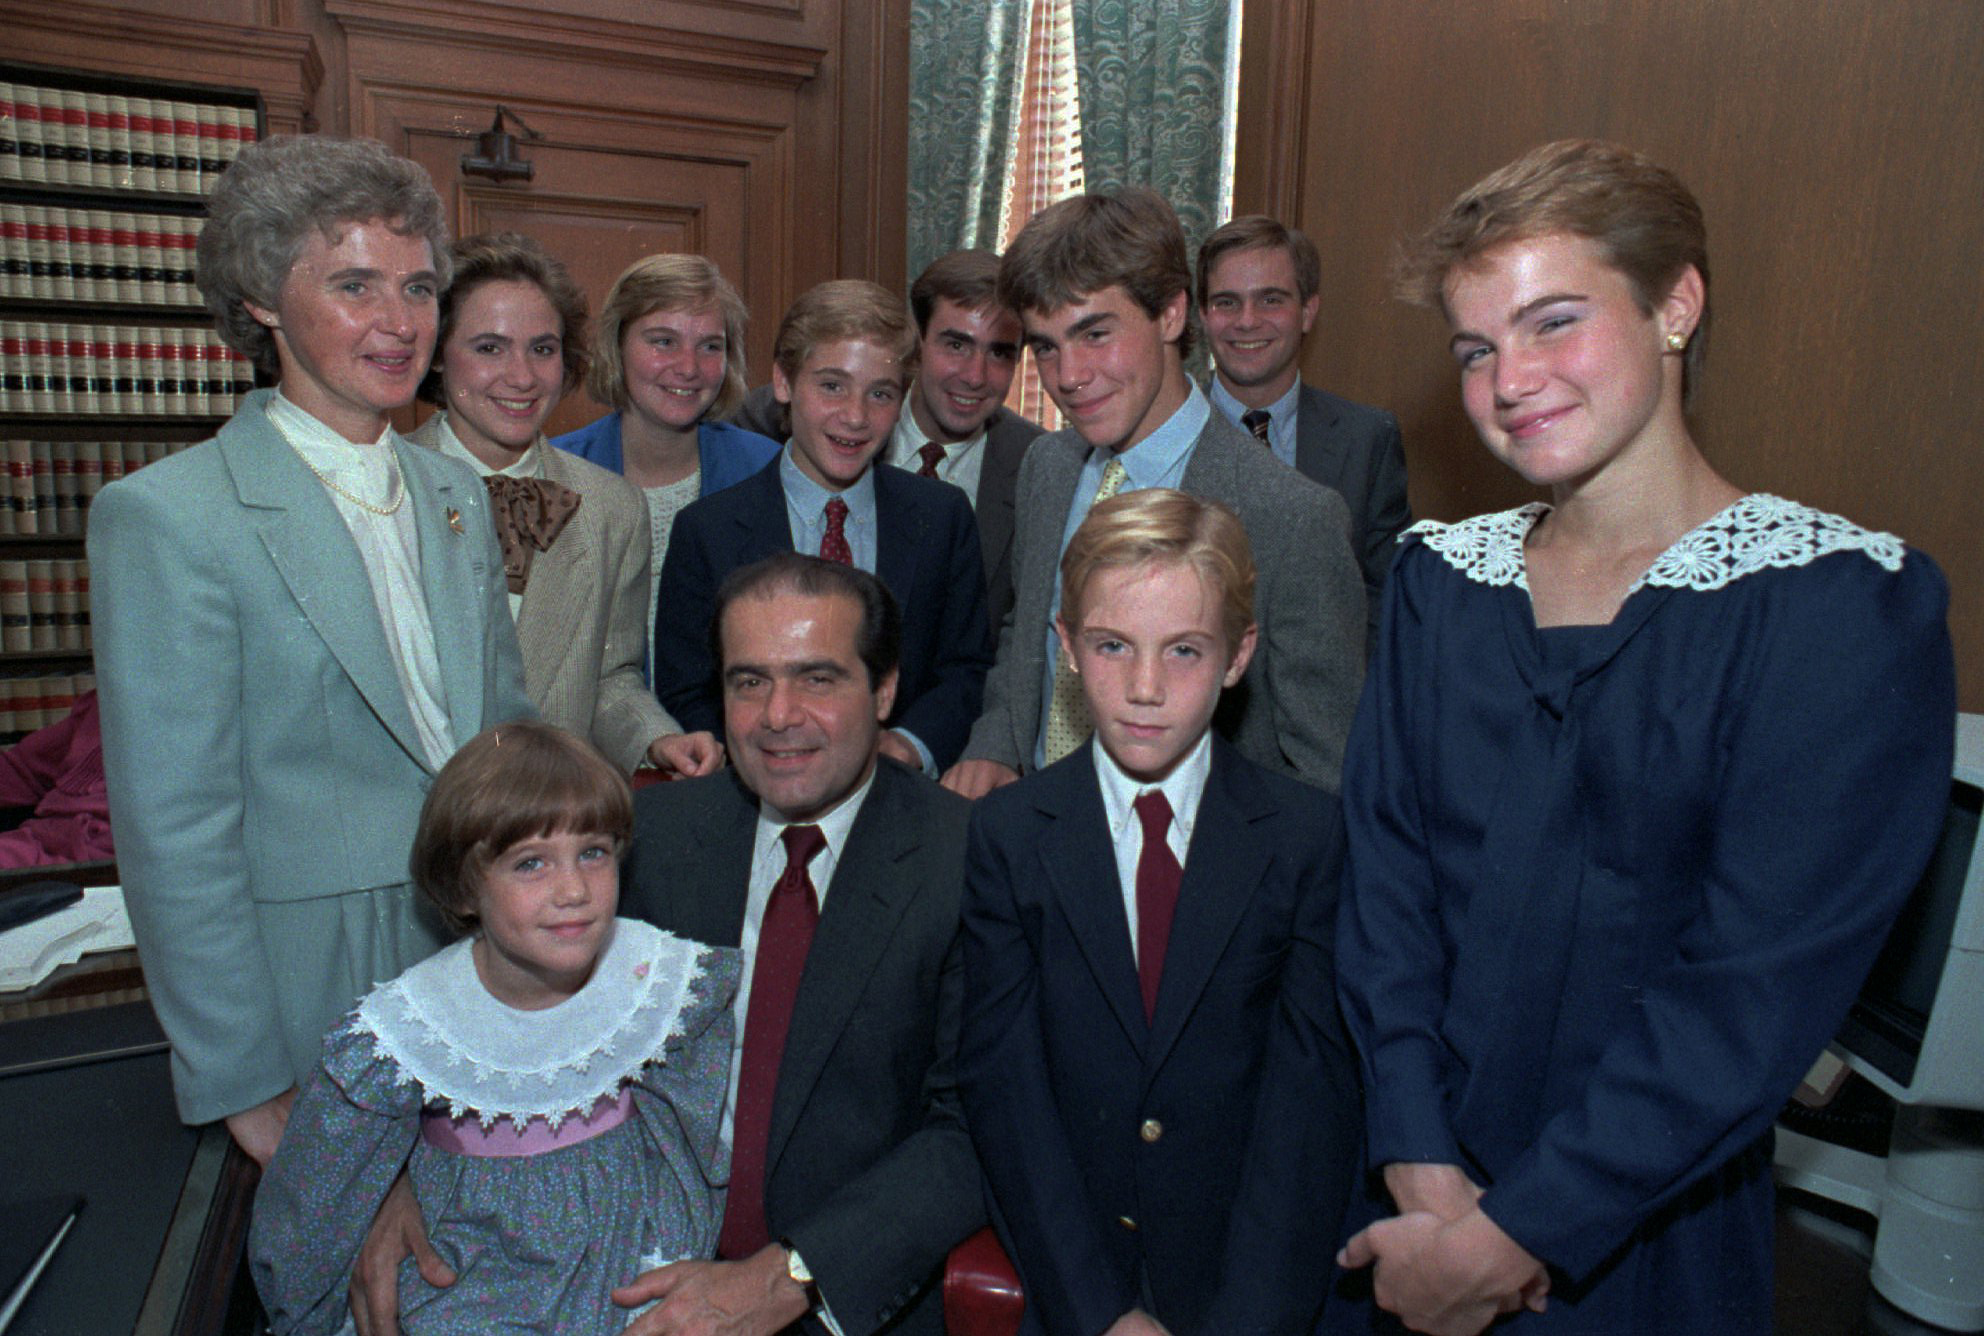 Antonin Scalia poses with his family in his chambers before court ceremonies on Sept. 26, 1986 in Washington, D.C.